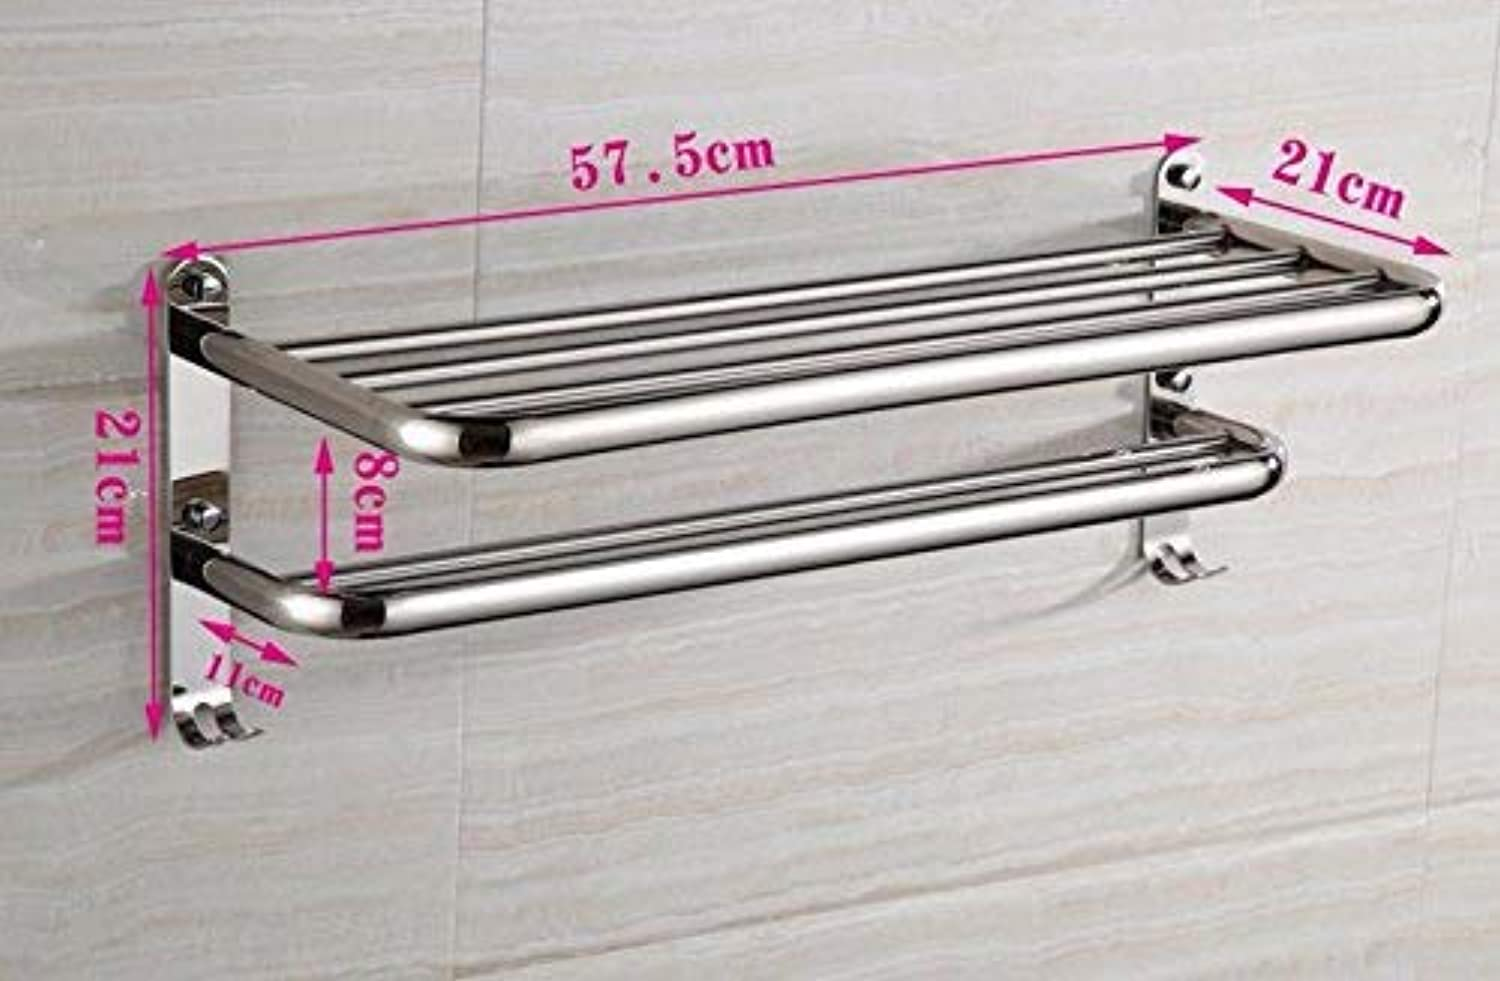 TOWEL RACK HOME Bathroom Sink Basin Tap Brass Mixer Tap Washroom Mixer Faucet Pull kitchen faucet 304 stainless steel faucet hot and cold-water faucet water faucet Stainl